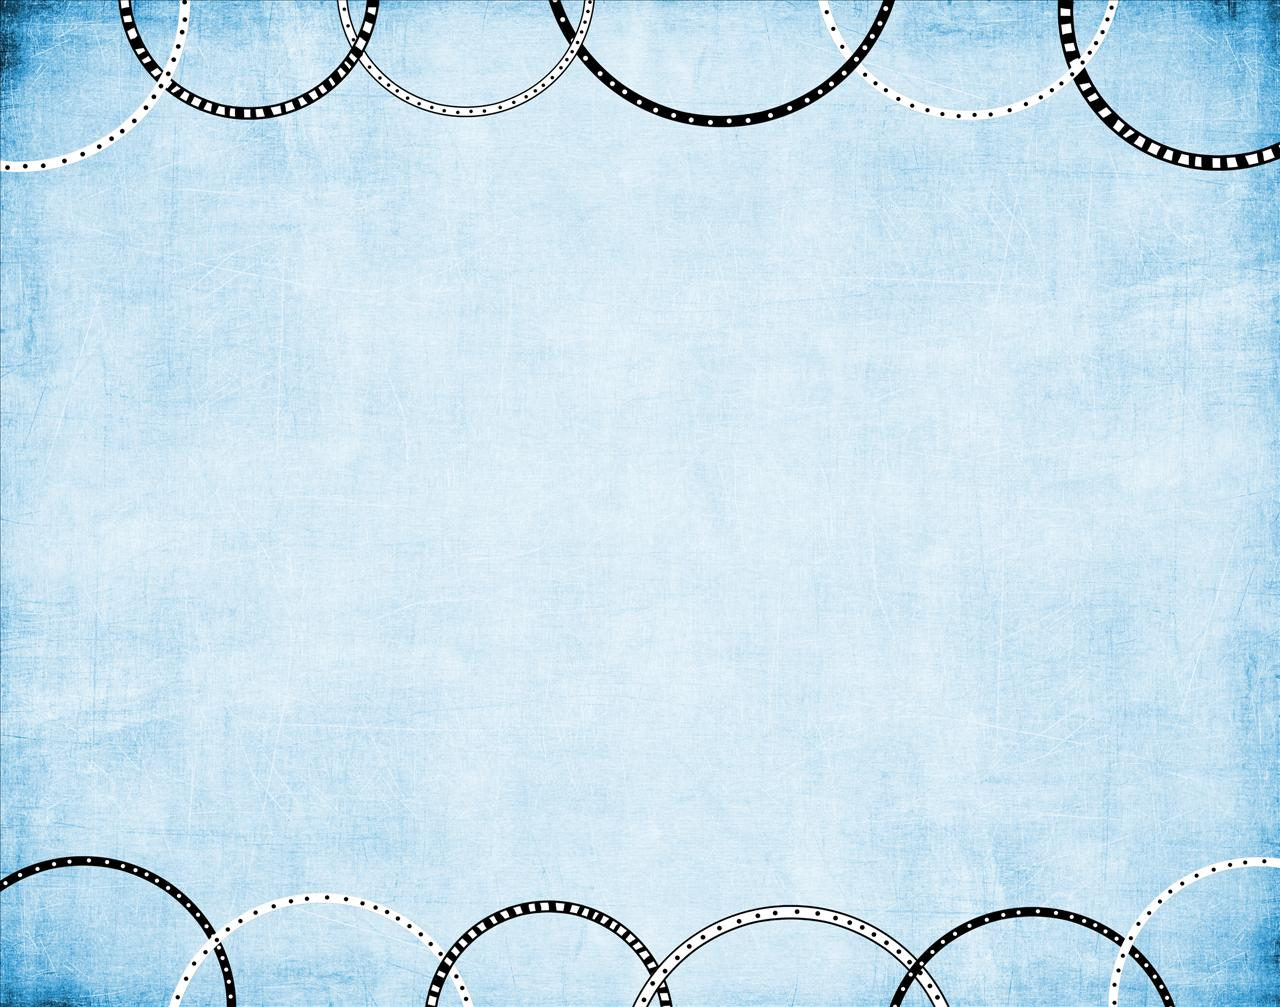 Blue with Rings Backgrounds